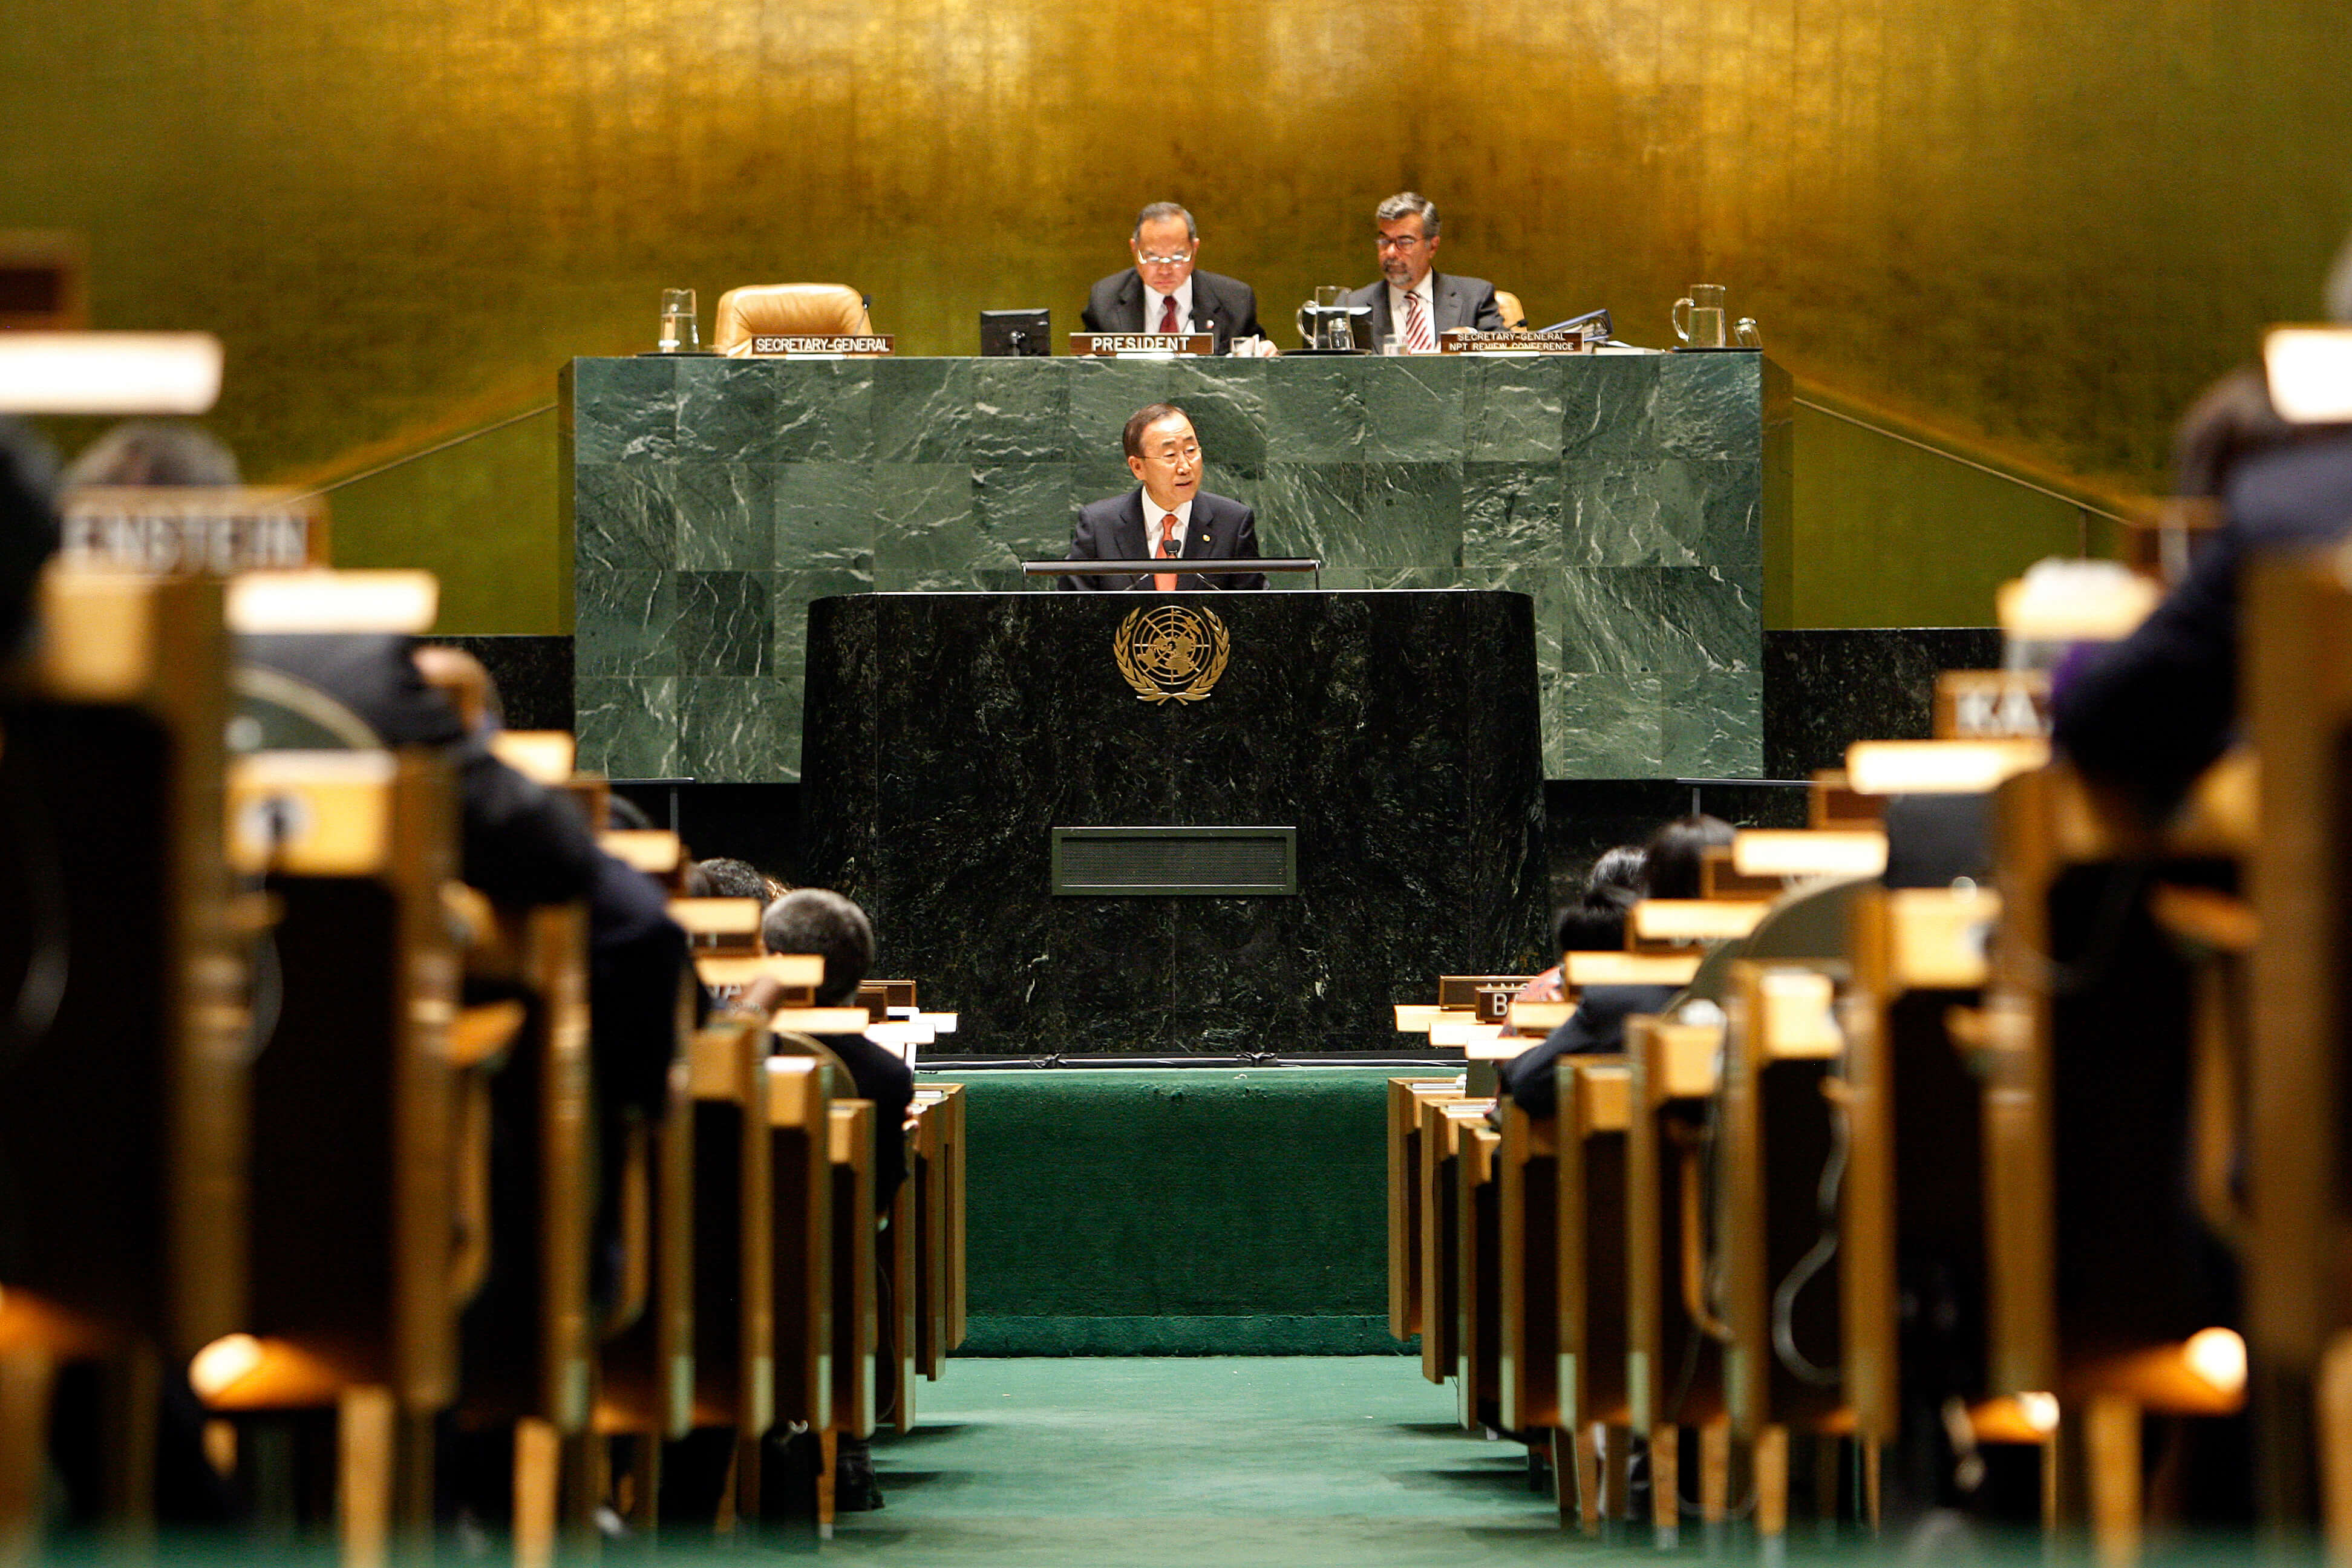 UN Secretary-General Ban Ki-moon urged nations to make nuclear disarmament targets a reality at the NPT Conference of 2010. © United Nations Photo